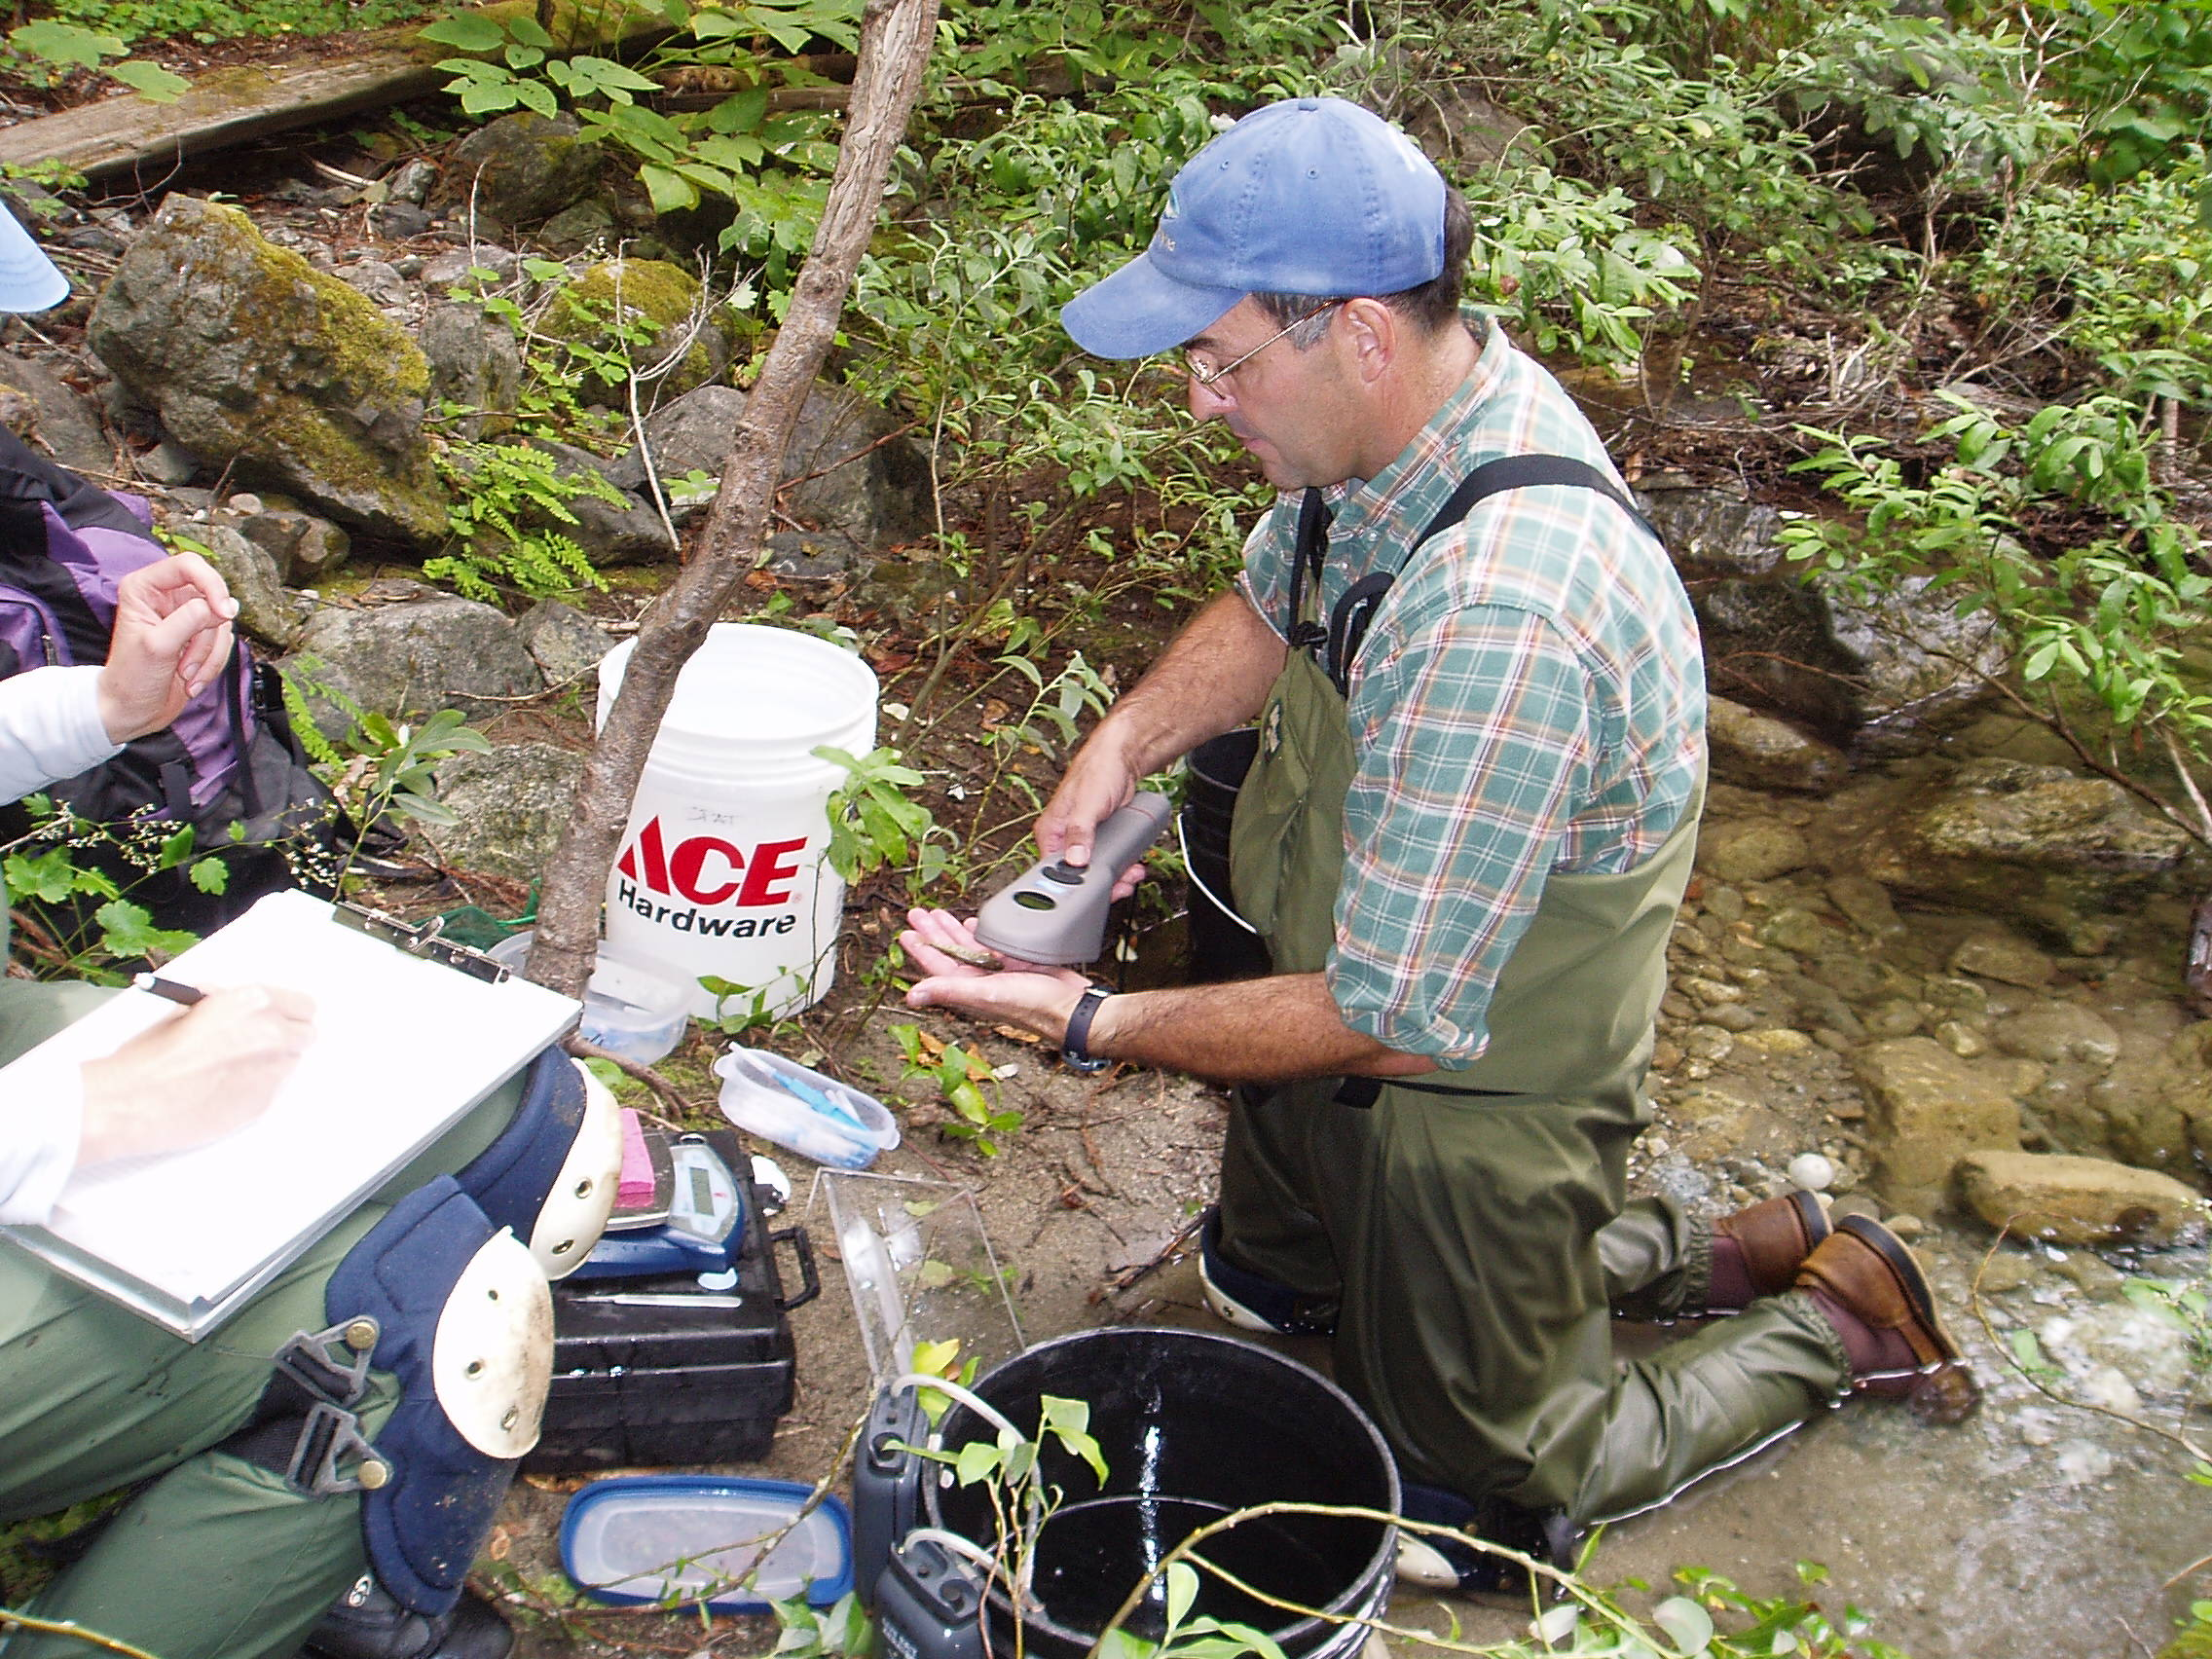 Fisheries biologist Tommy Williams scans a juvenile steelhead trout for a passive integrated transponder (PIT) tag. PIT tags uniquely identify the fish and in mark-and-recapture studies, they allow scientists to estimate fish survival rates and population size.